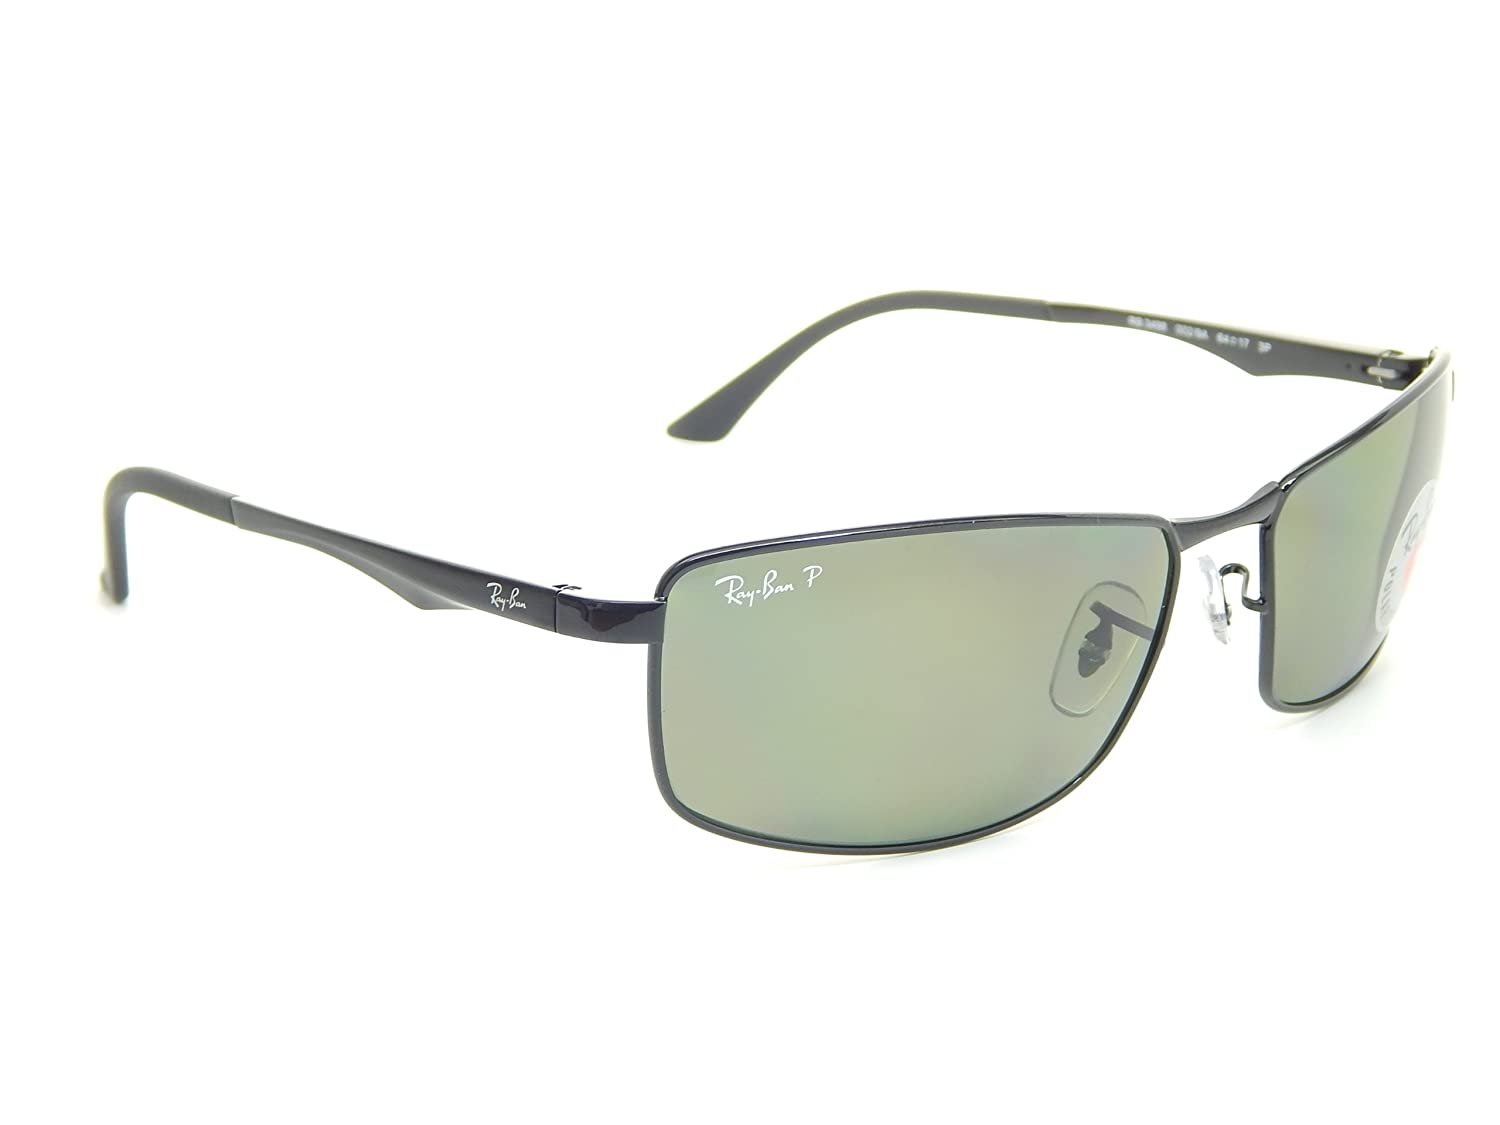 ce3ee1a0e1 New Ray Ban RB3498 002 9A Black Polarized Green 64mm Sunglasses   Amazon.co.uk  Clothing